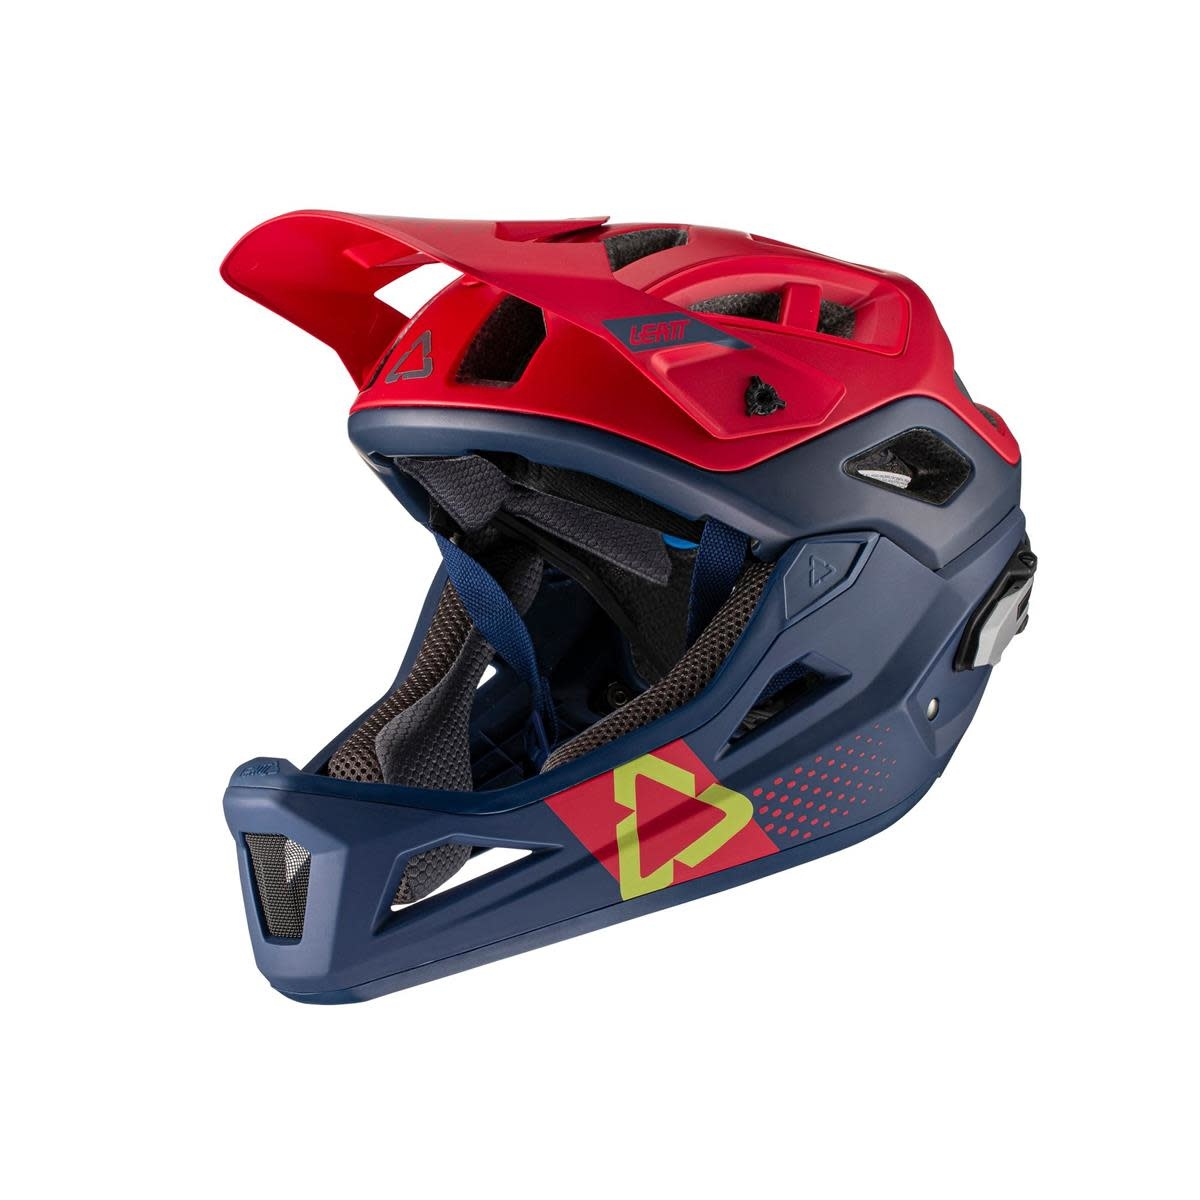 Leatt MTB 3.0 Enduro Helmet, S (51-55cm) Chilli